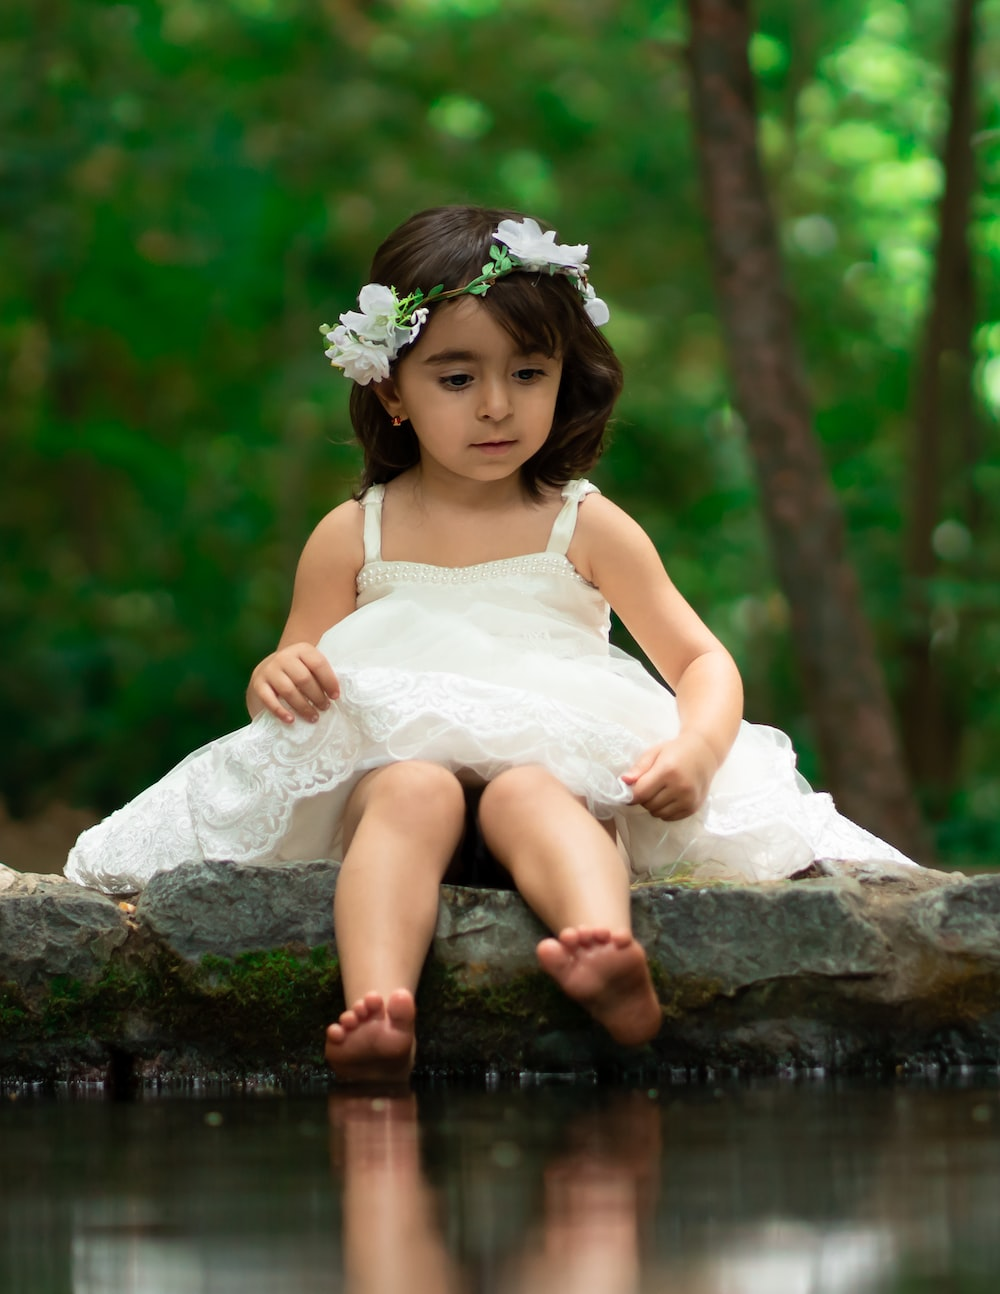 girl in white dress by body of water at daytime